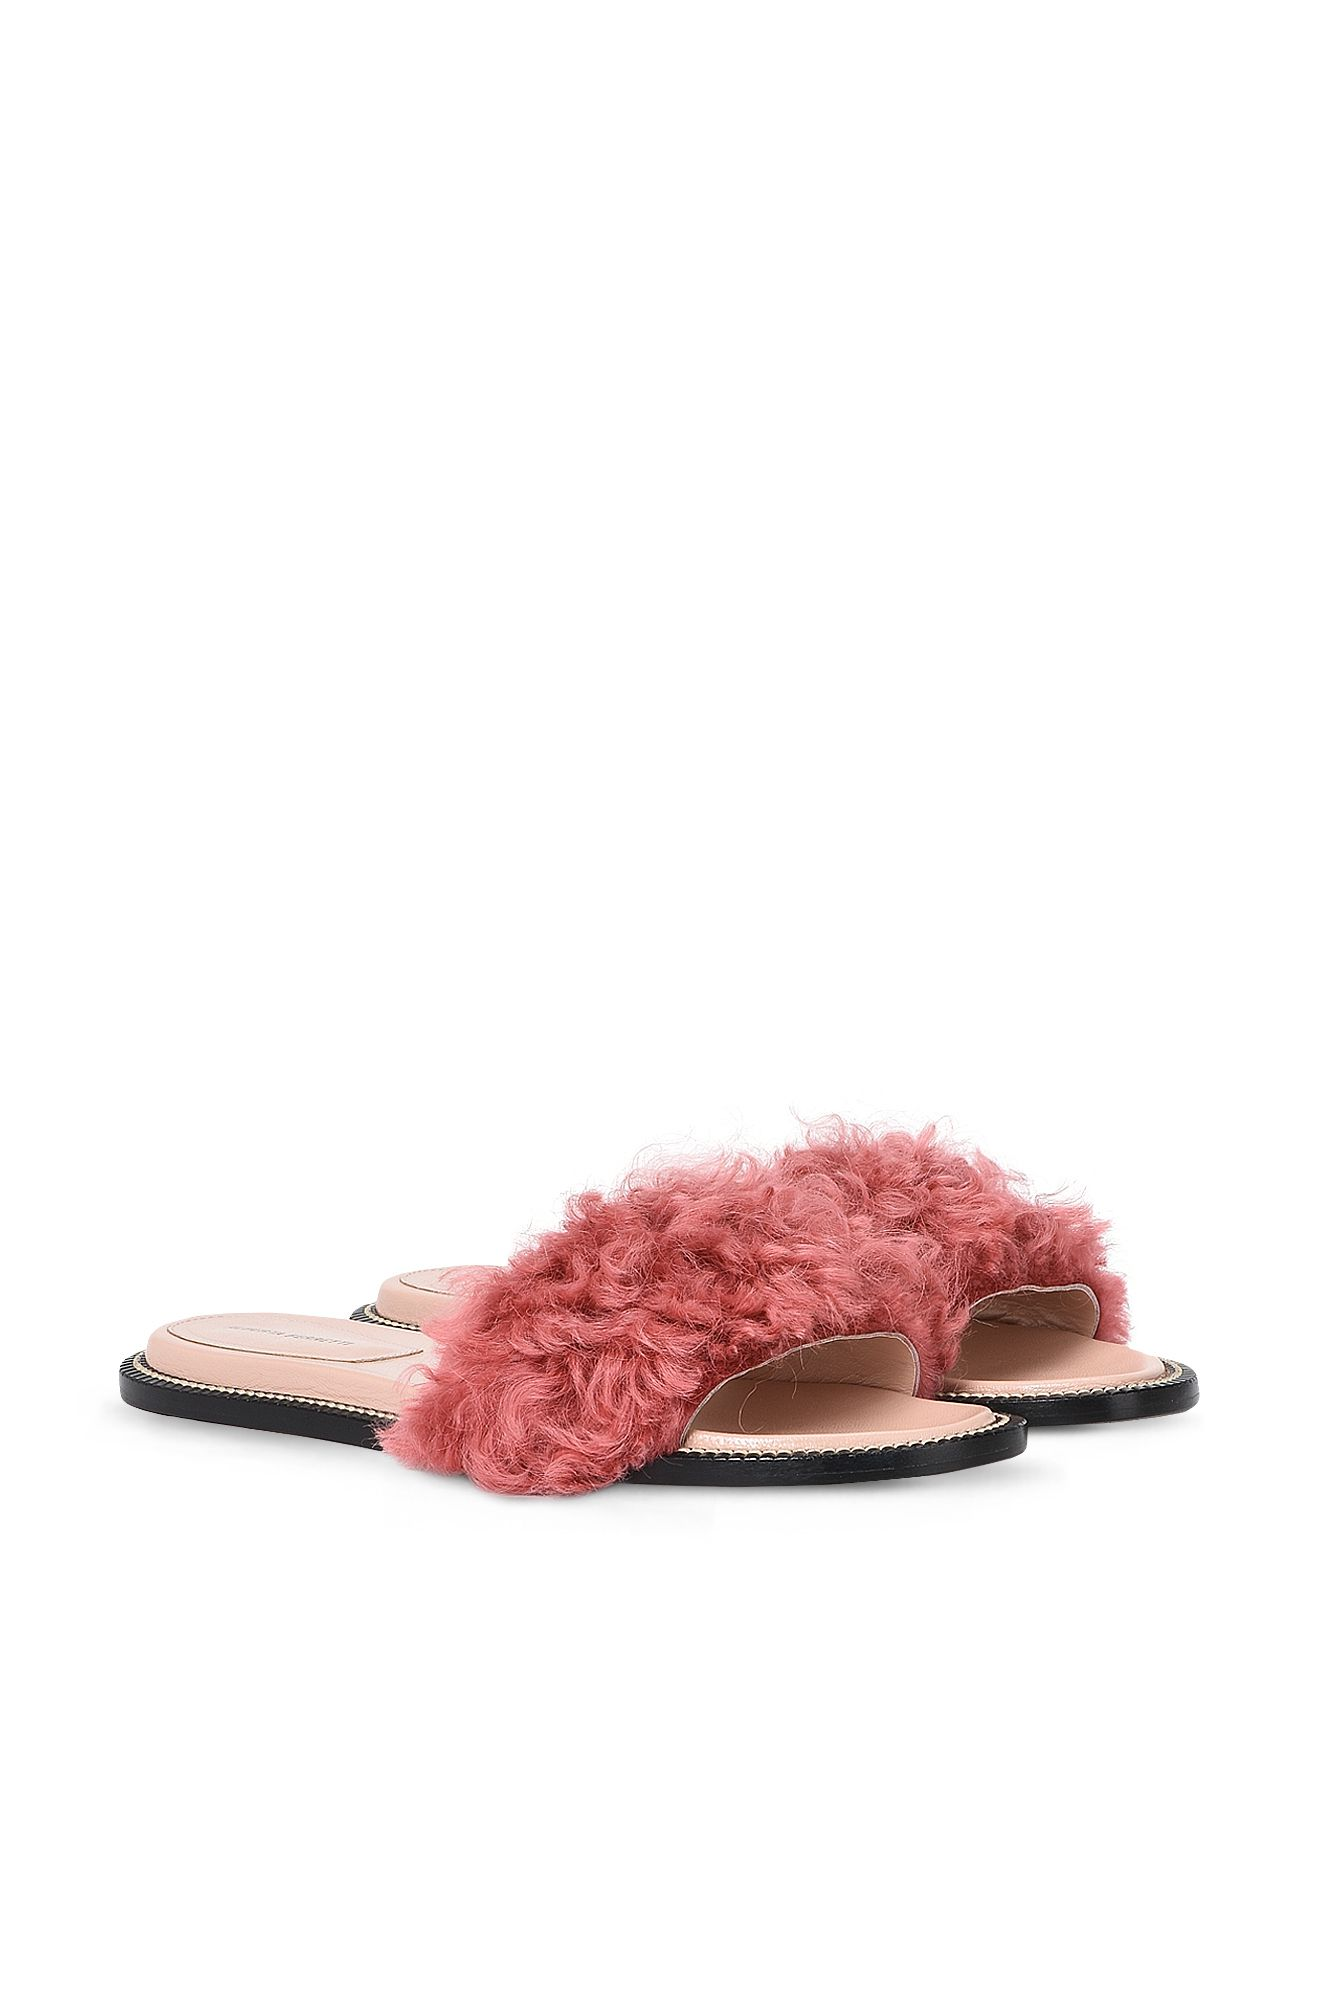 Monotone slipper